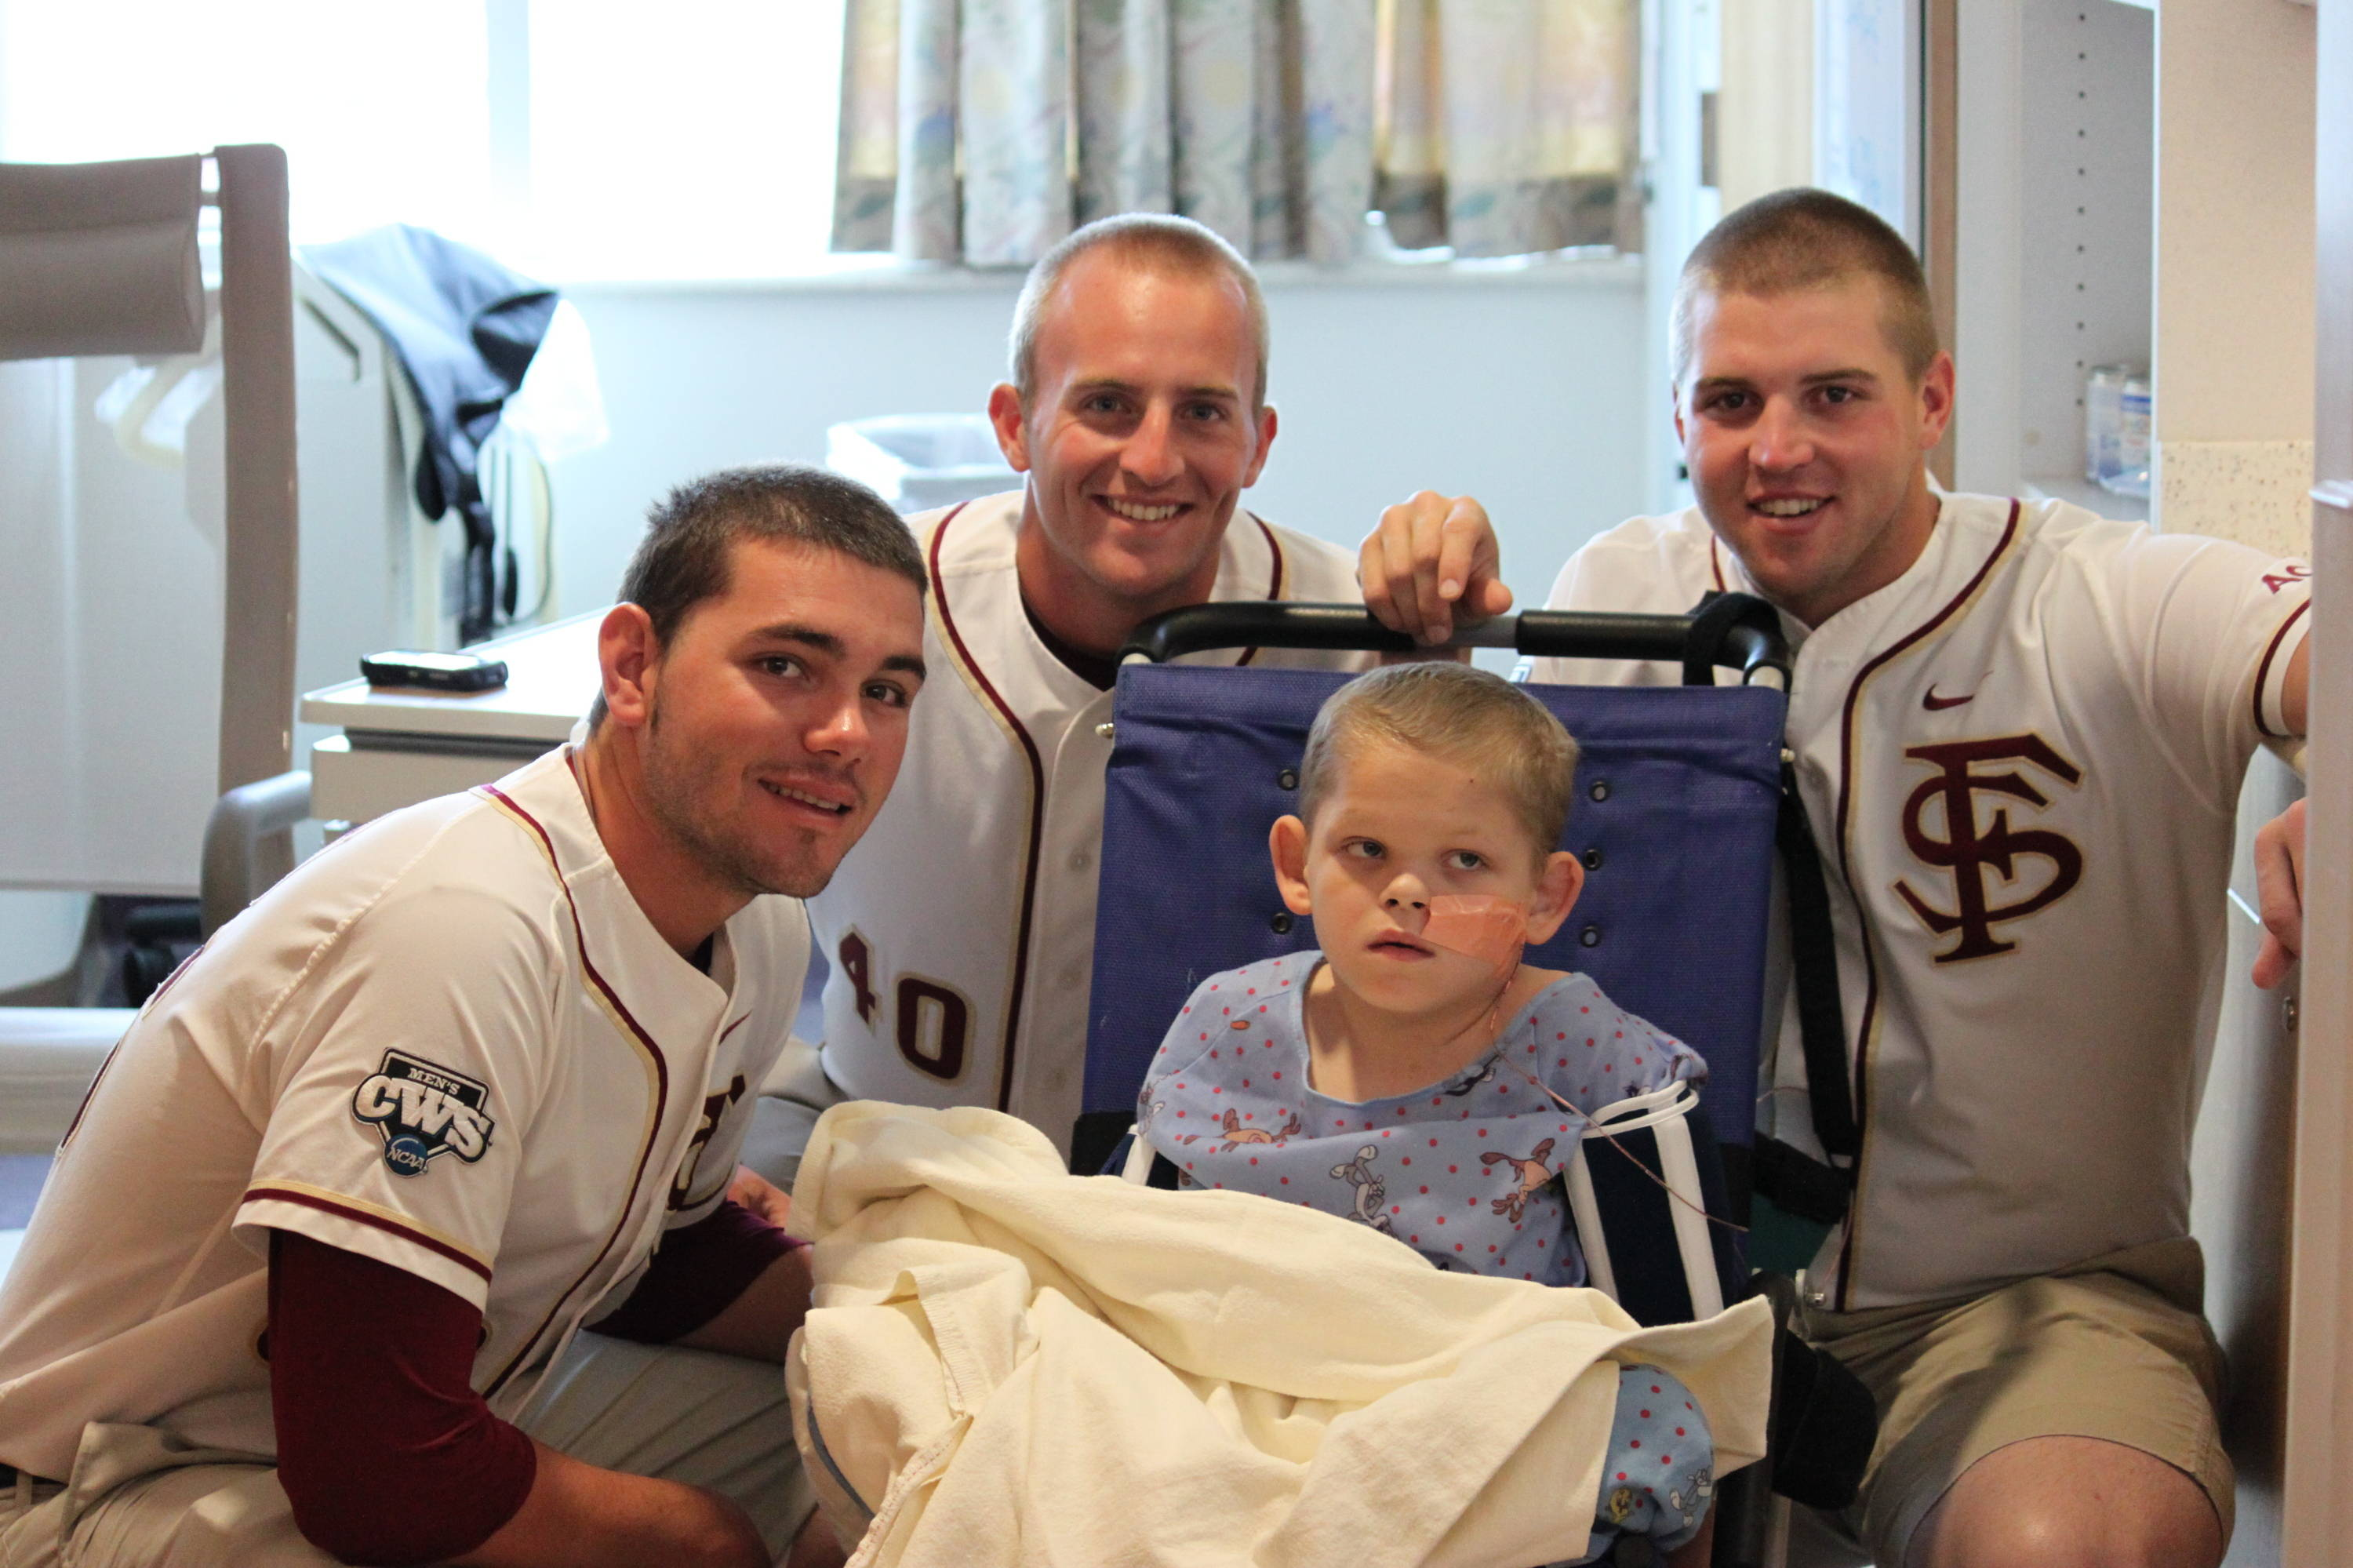 Robby Scott, Brandon Roth and Geoff Parker on a visit to the Children's Hospital in Omaha